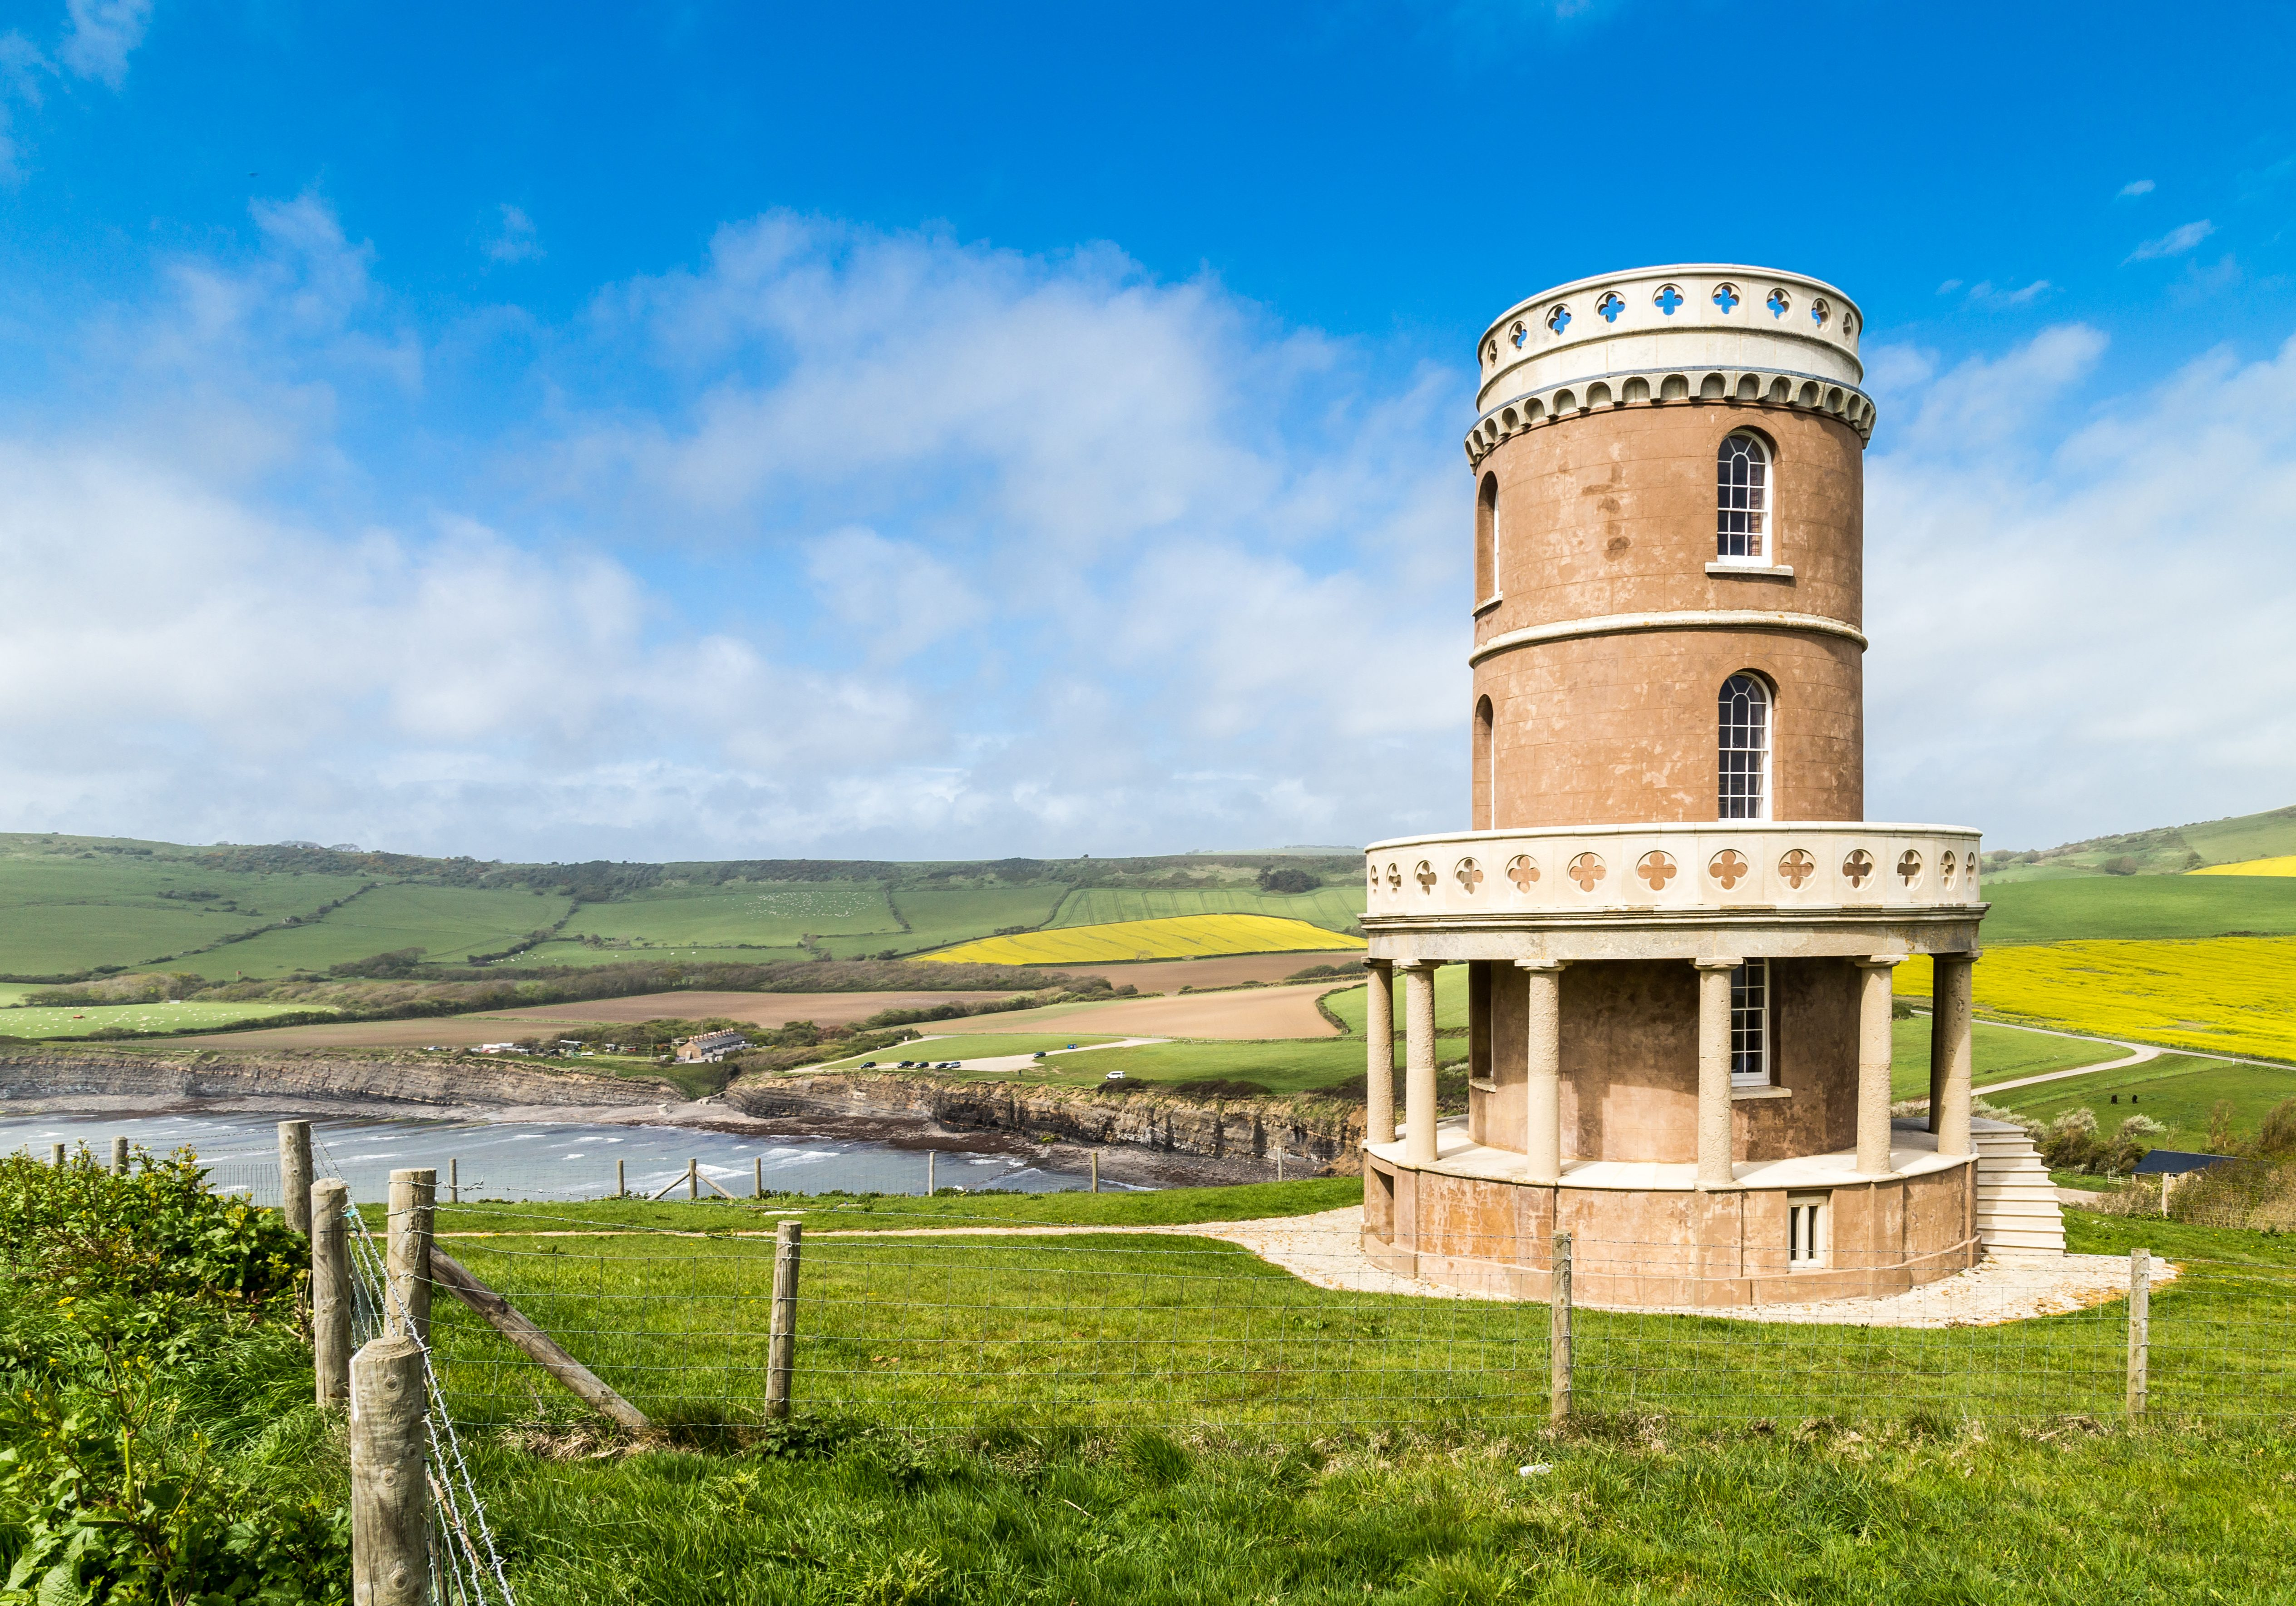 The Clavell Tower, Kimmeridge Bay